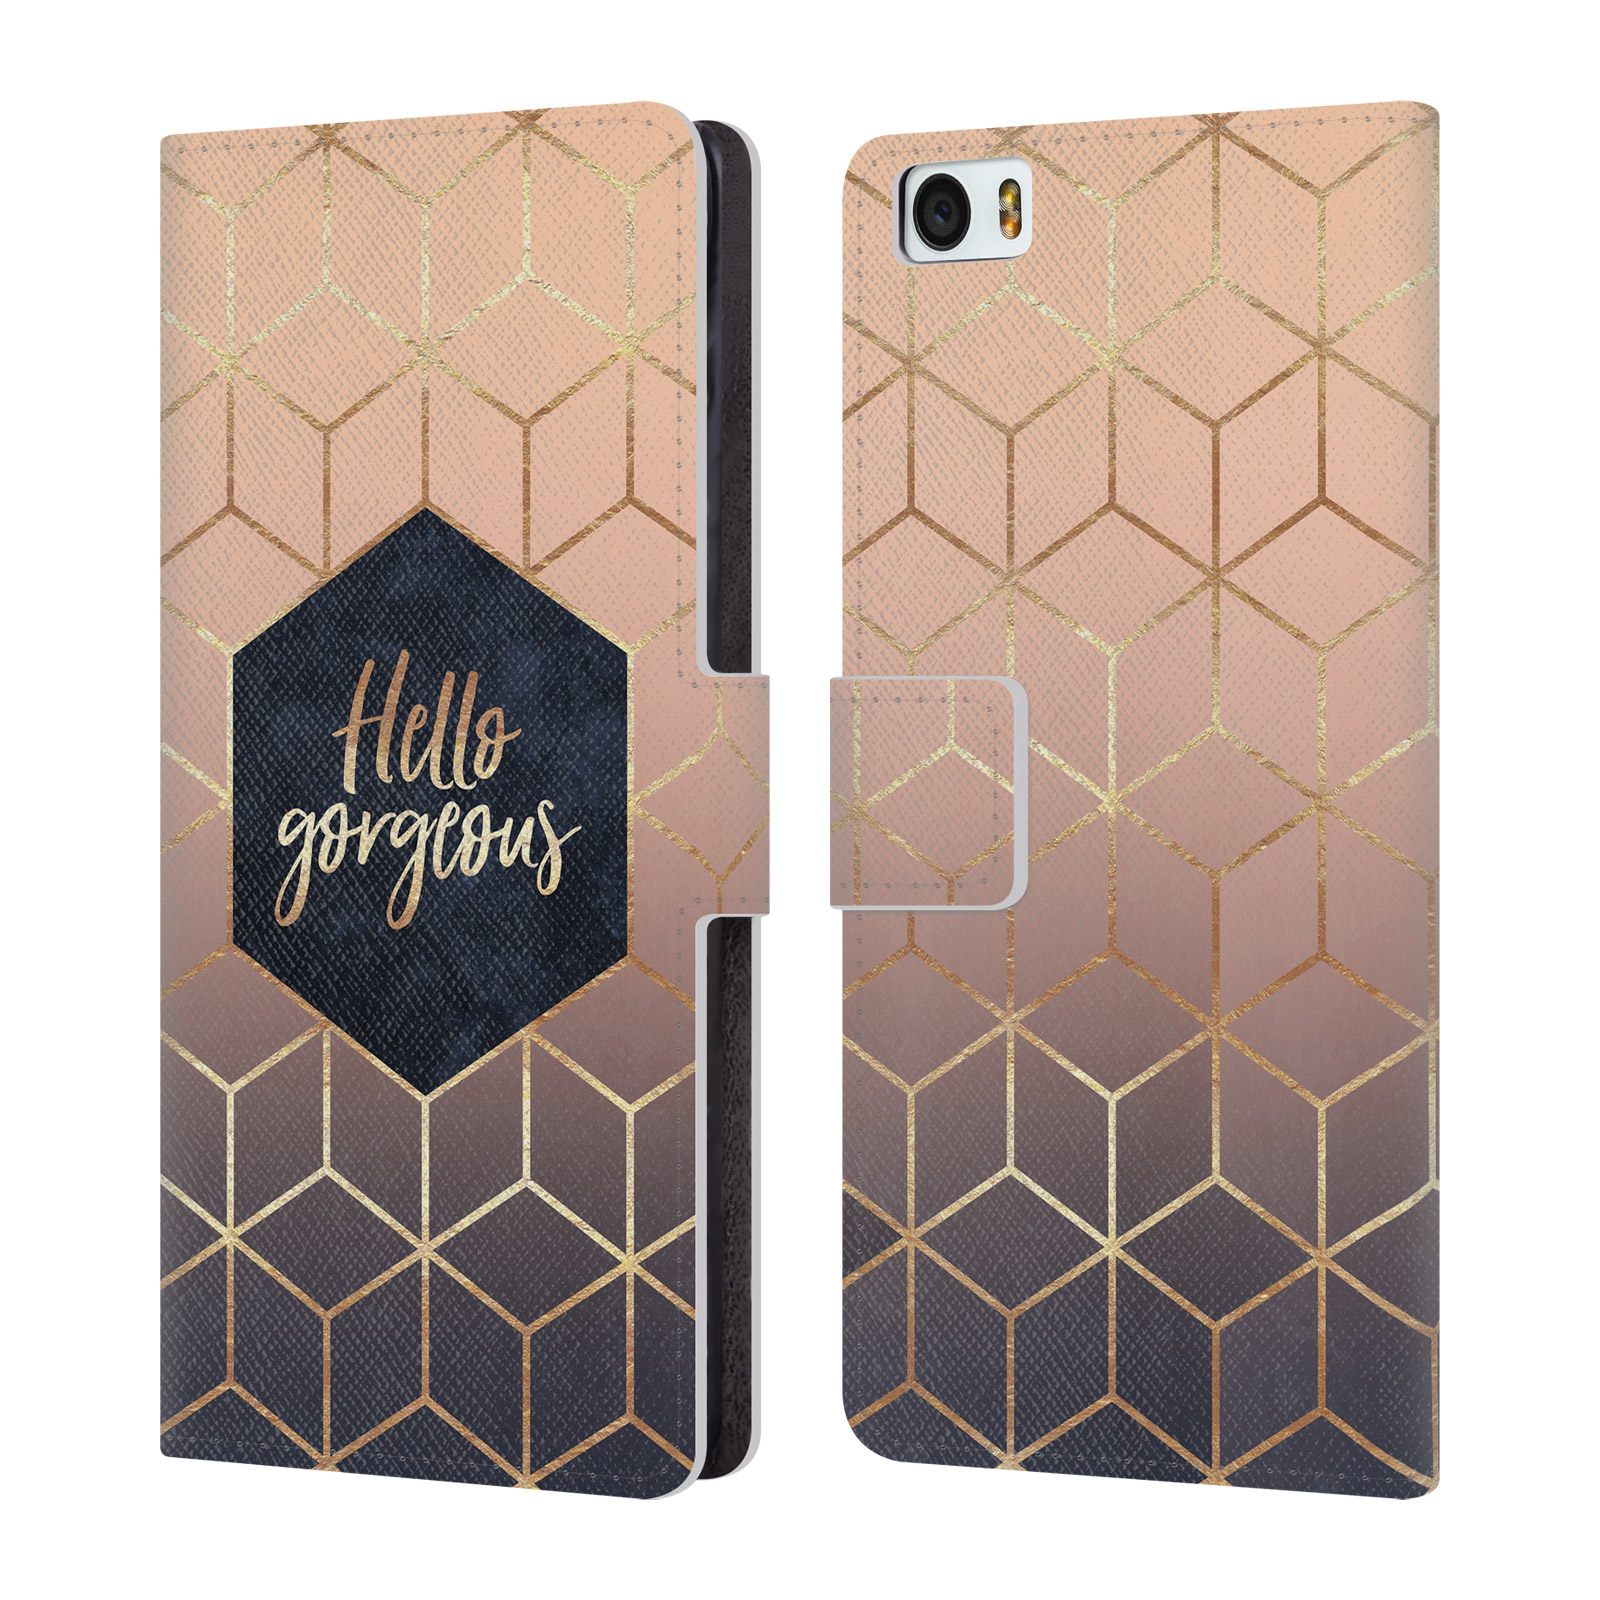 OFFICIAL-ELISABETH-FREDRIKSSON-TYPOGRAPHY-LEATHER-BOOK-CASE-FOR-XIAOMI-PHONES